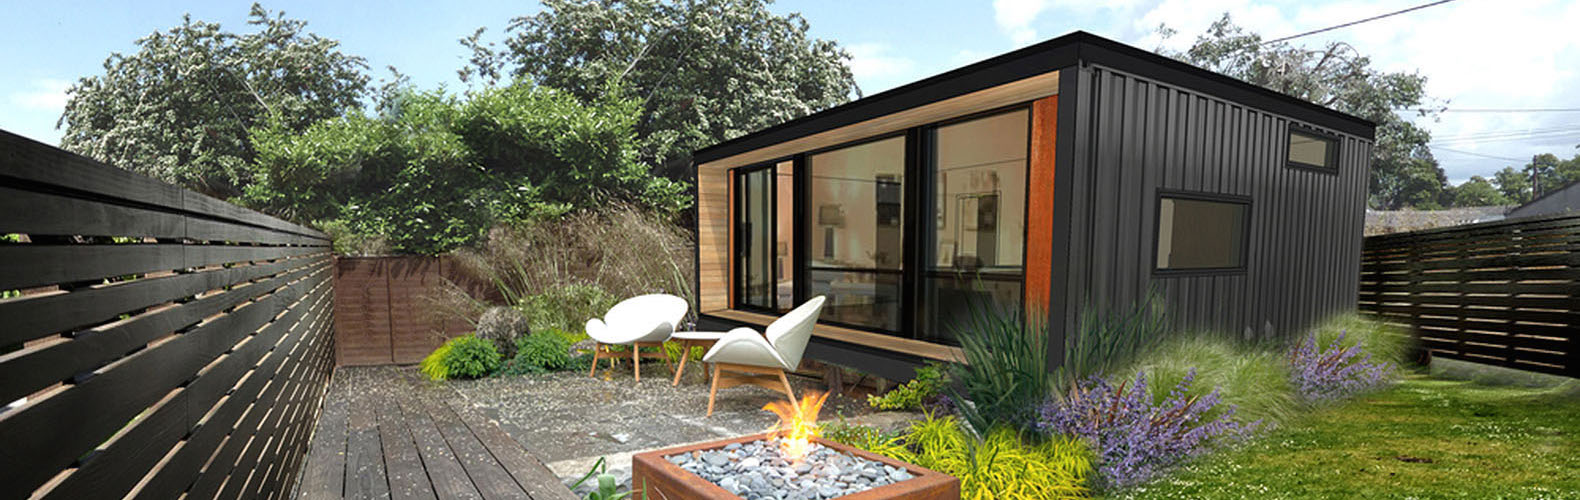 affordable housing, Cargotecture, flexible layout, green architecture, HO House, HO2 House, Honomobo, open-plan, Prefab Homes, Prefab Houses, shipping containers, tiny houses